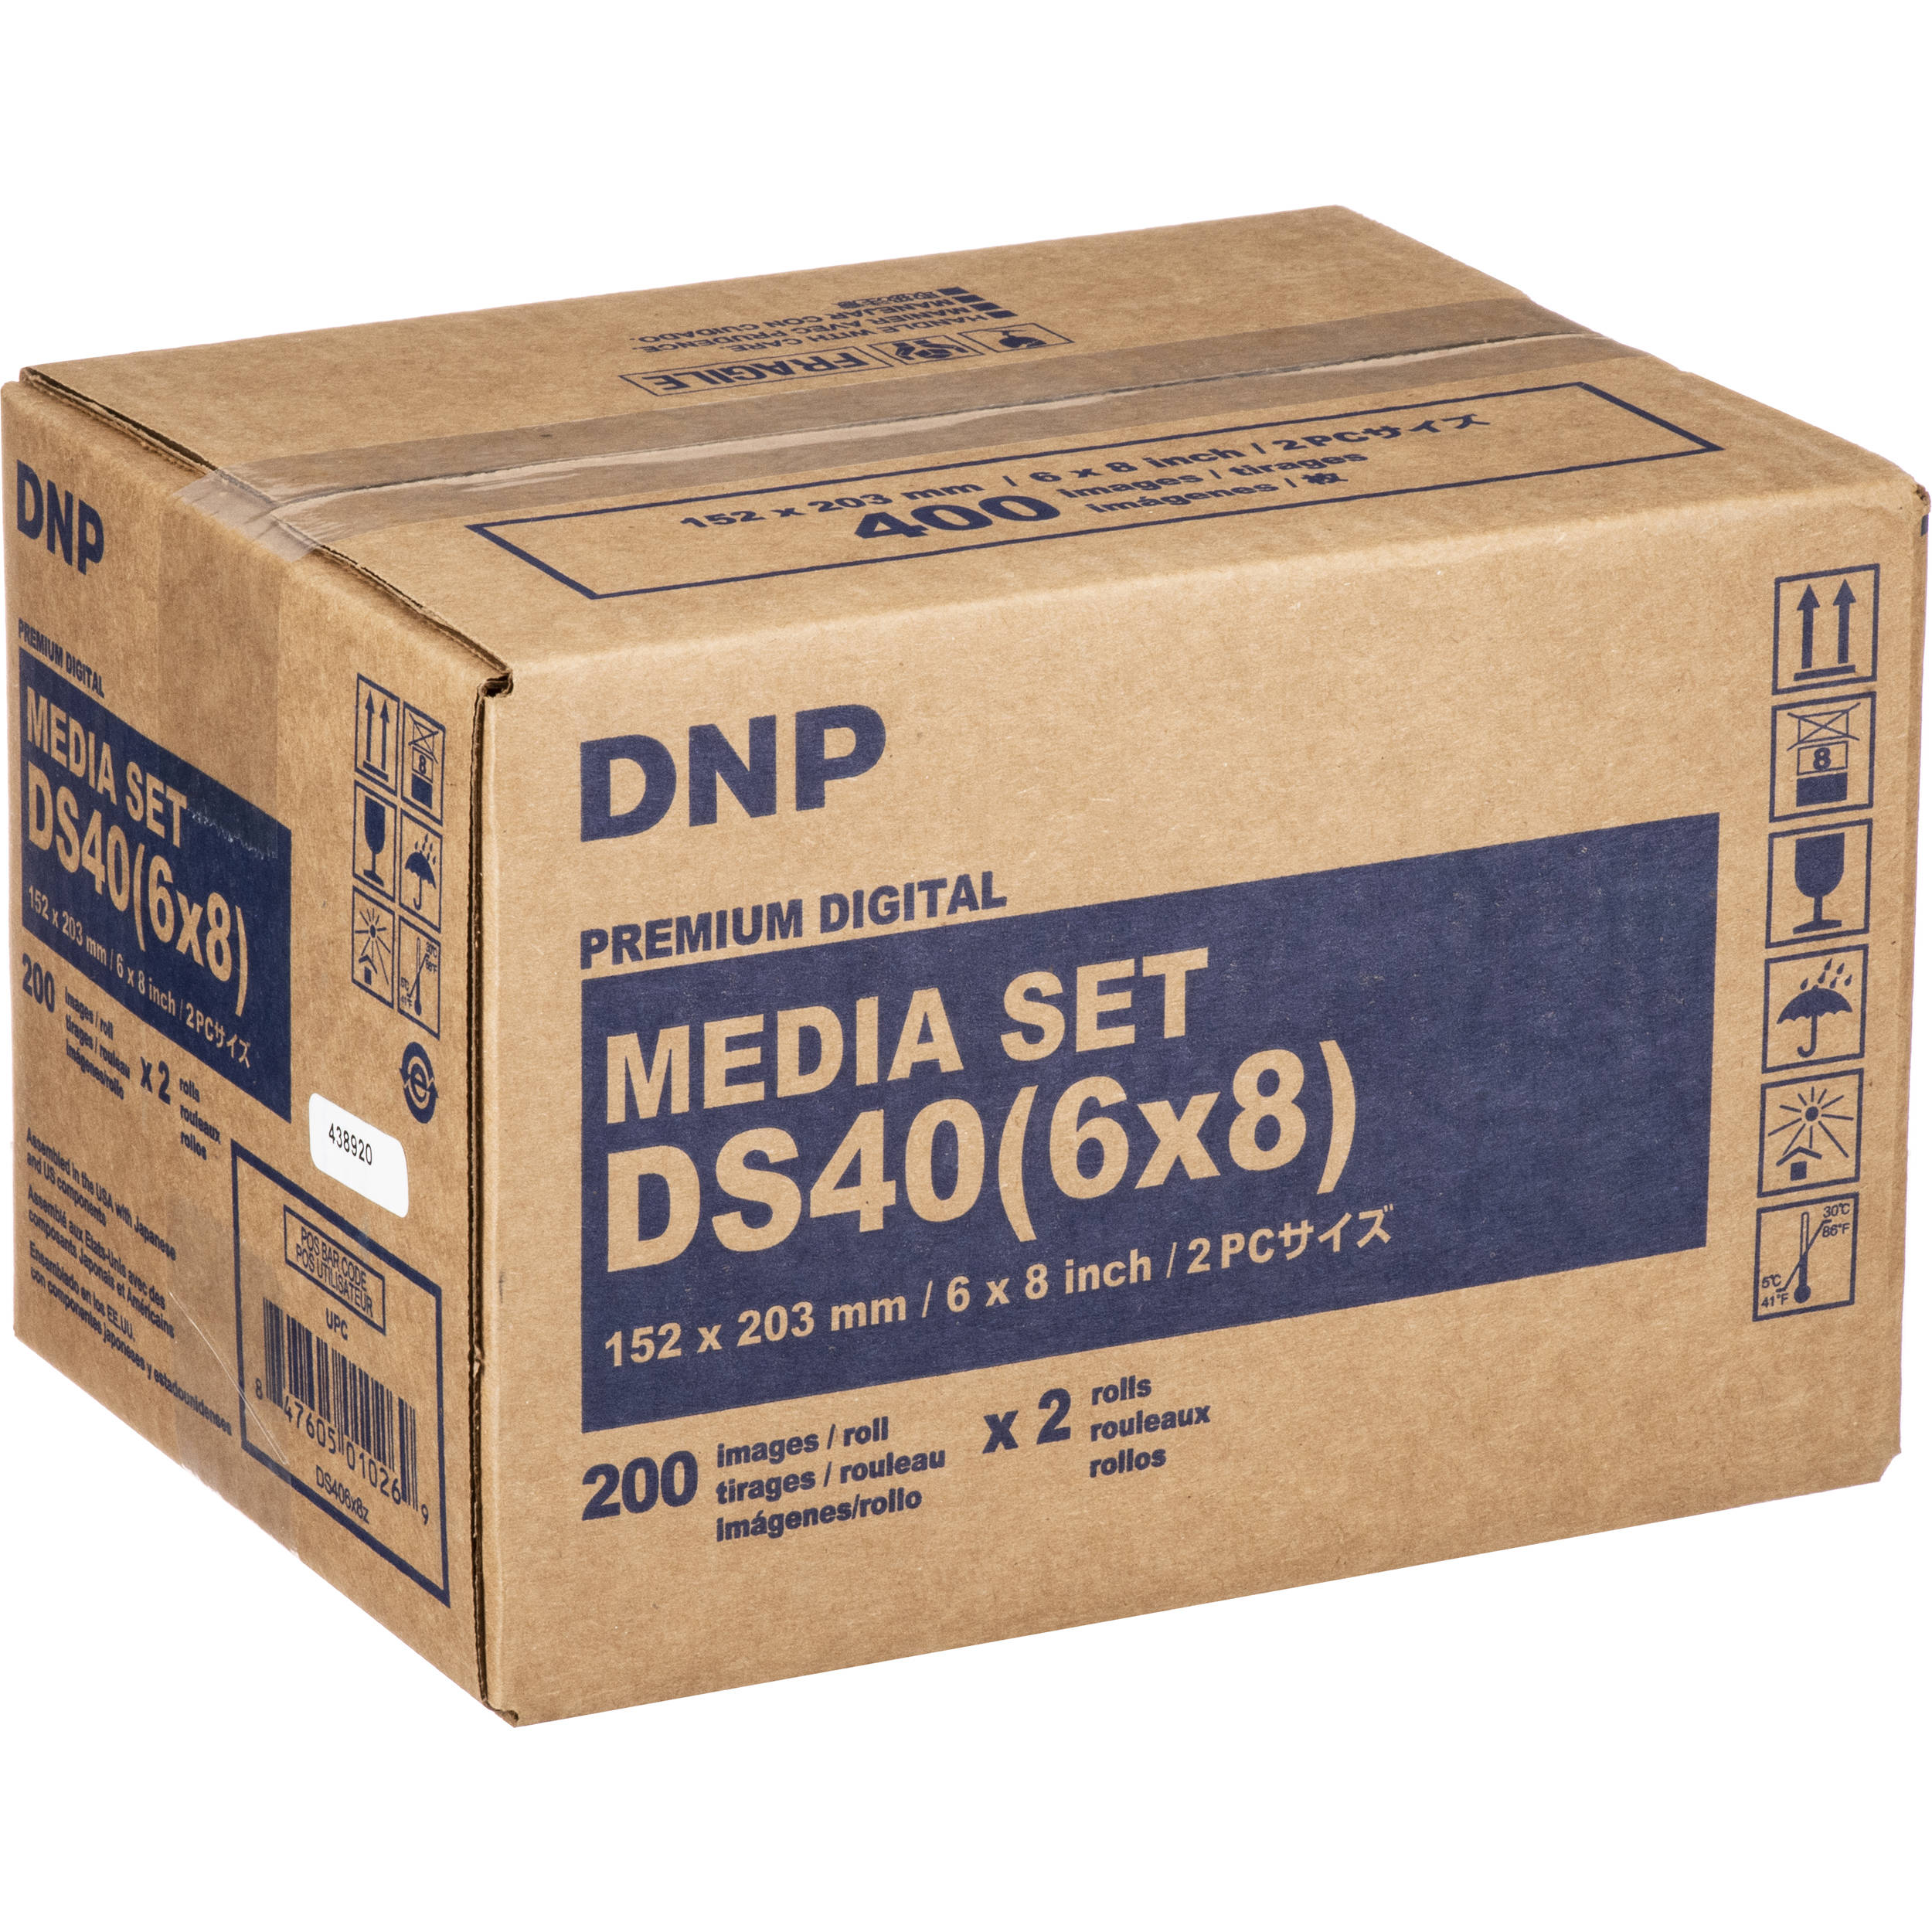 DNP DS40 6x8 Dyesub Printer Paper 400 Glossy Prints For DS40 Printers